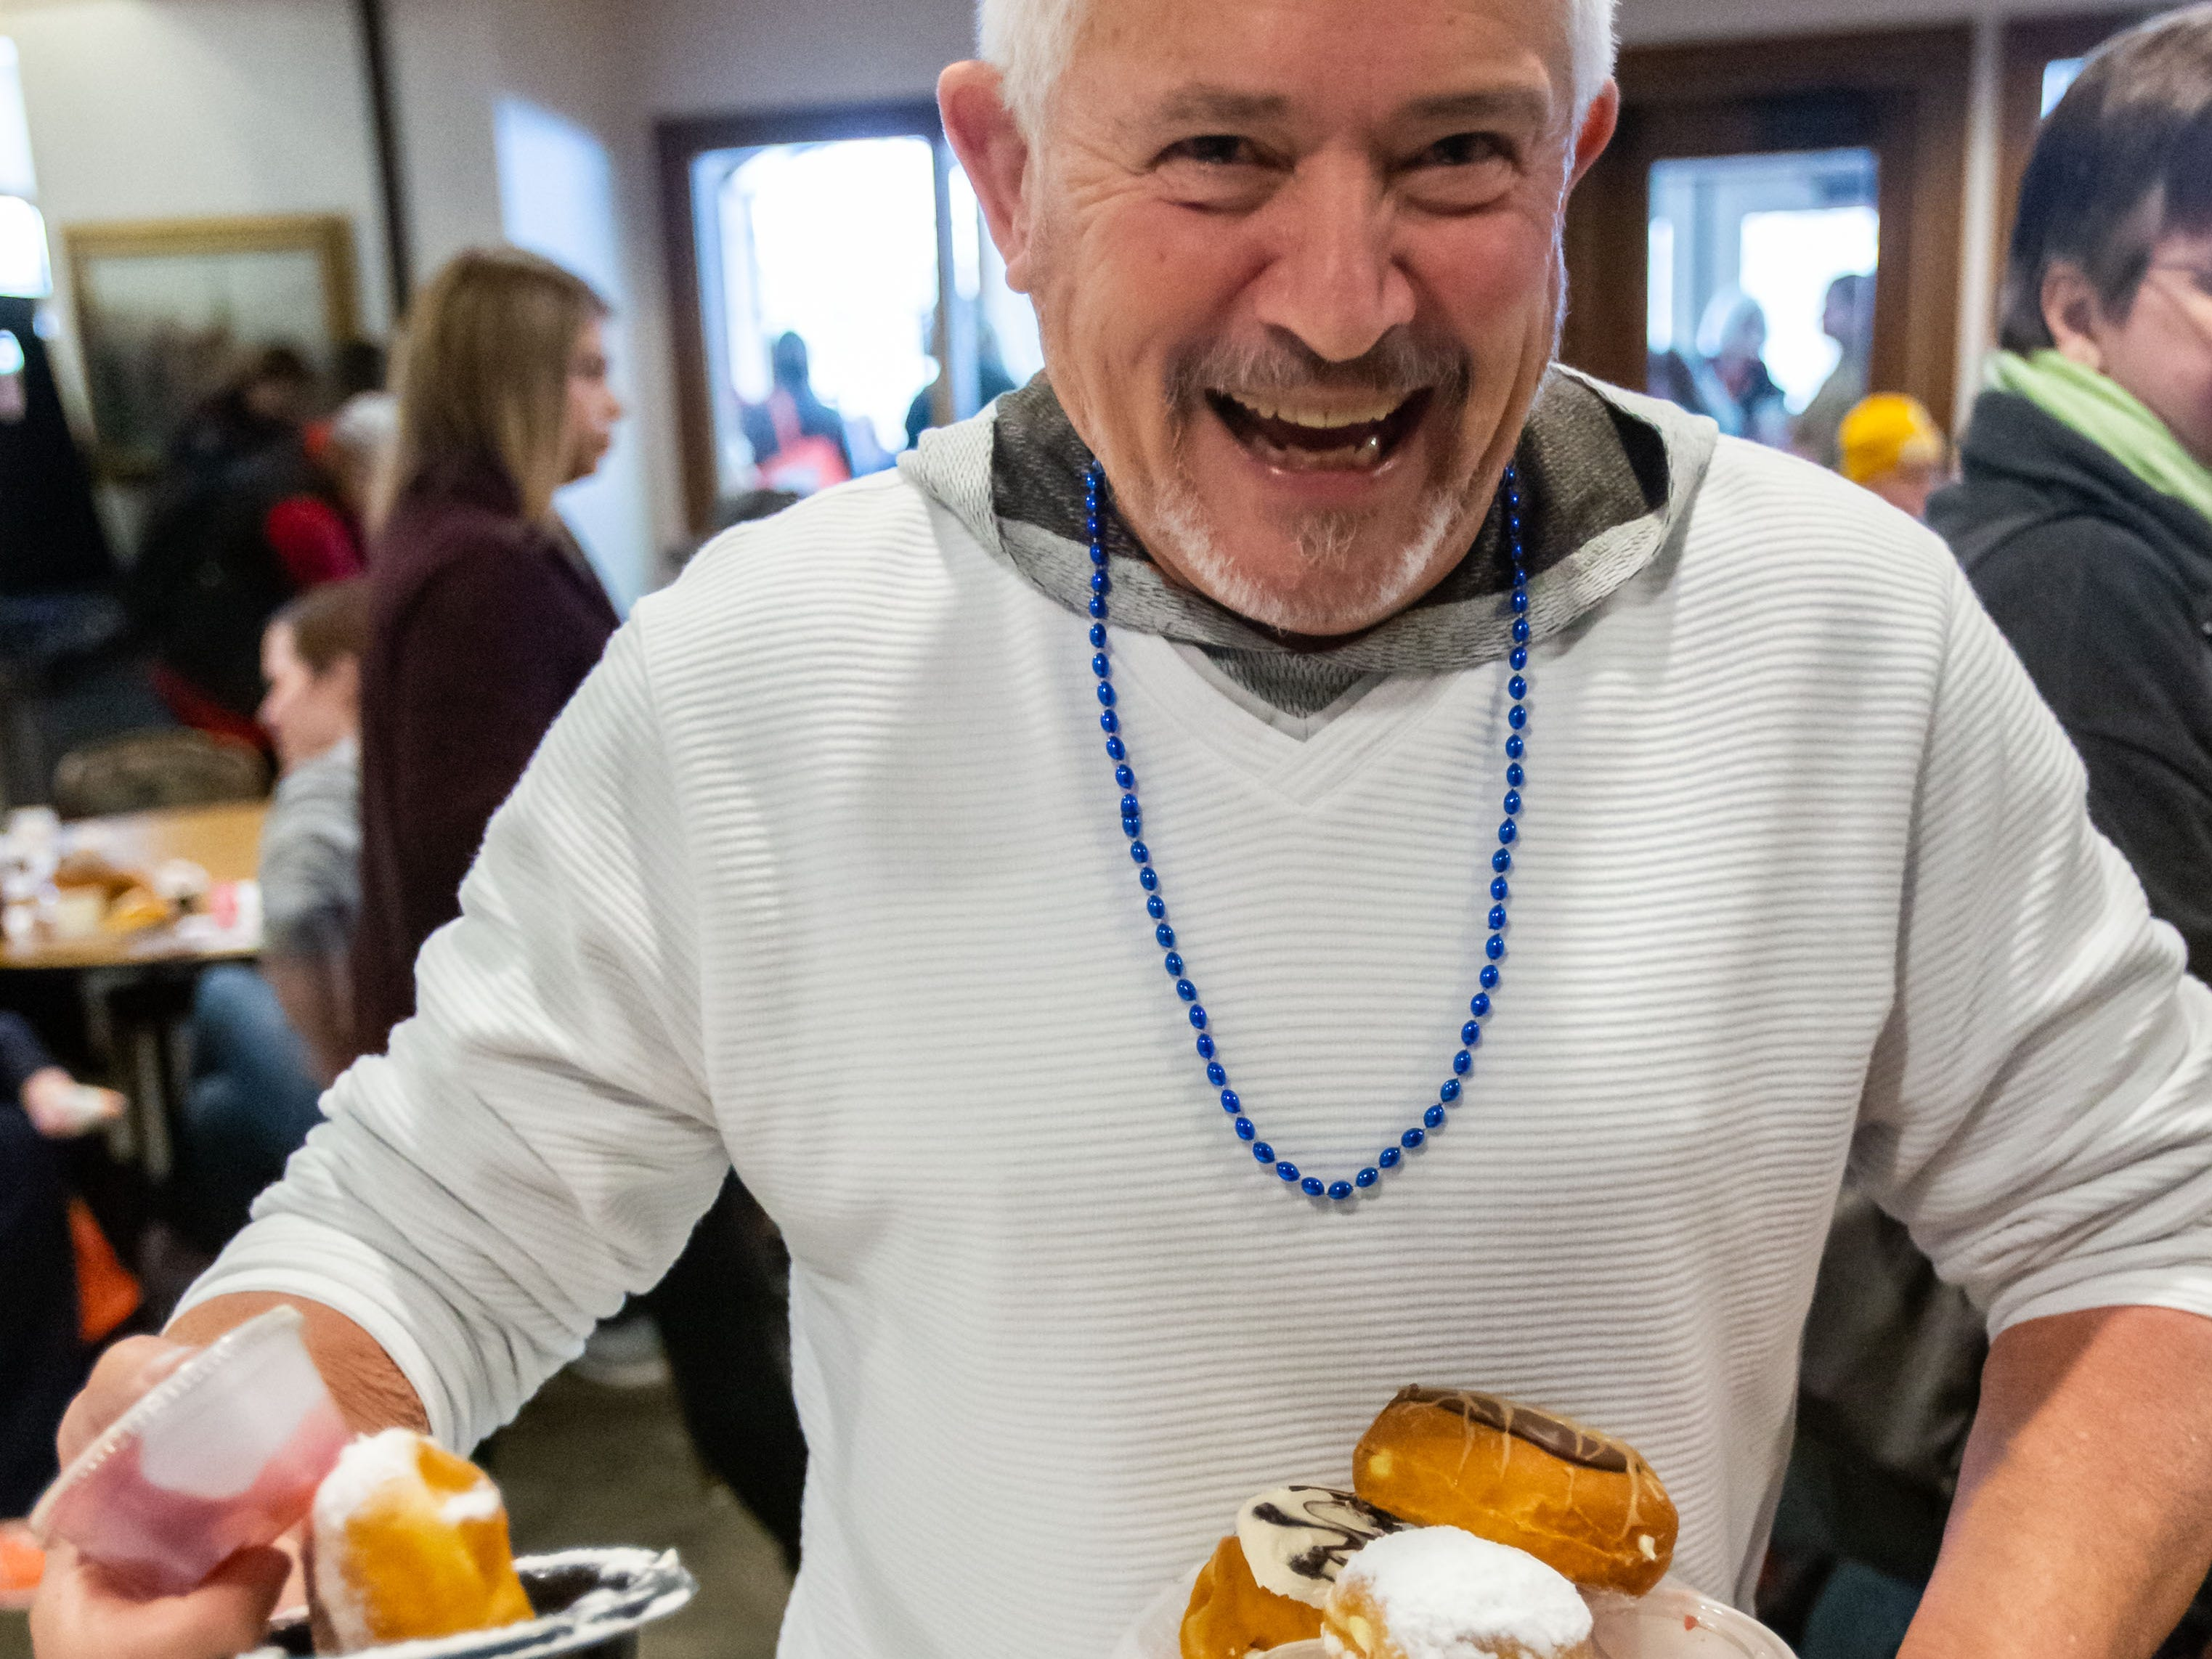 Bob Nelson of Franklin gets ready to sample a variety of flavors during the Wisconsin Bakers Association's Paczki Preview Party at the Polish Center of Wisconsin in Franklin on Sunday, Feb. 24, 2019. The event, which showcases some of the best paczki from the area, also features live music, a special guest appearance by Little Miss Polish Fest and more.